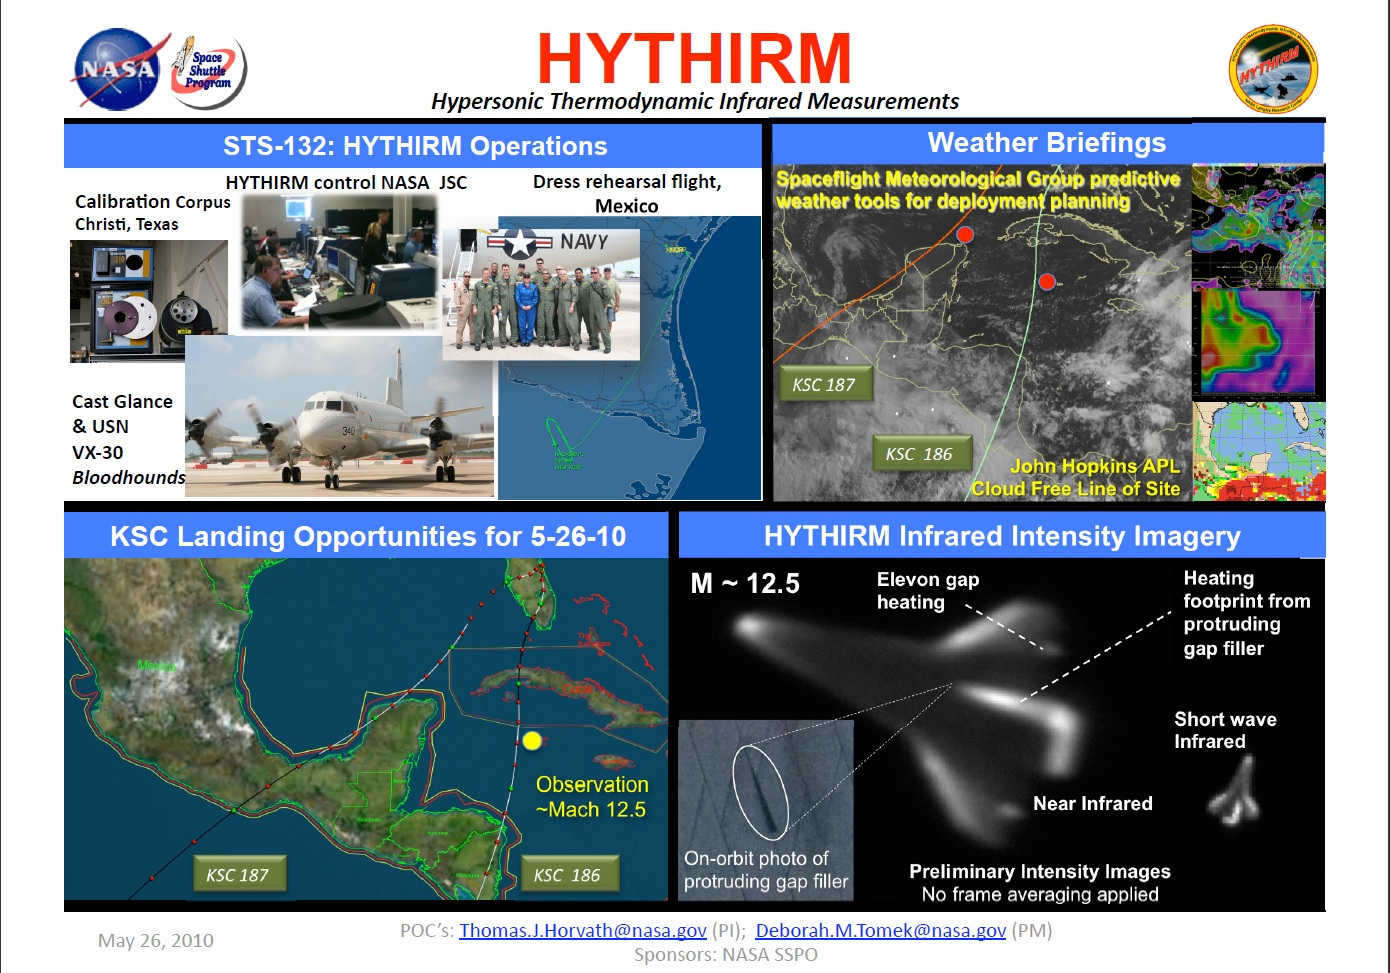 Graphic with examples of HYTHIRM's thermal imagery and assets used to capture it